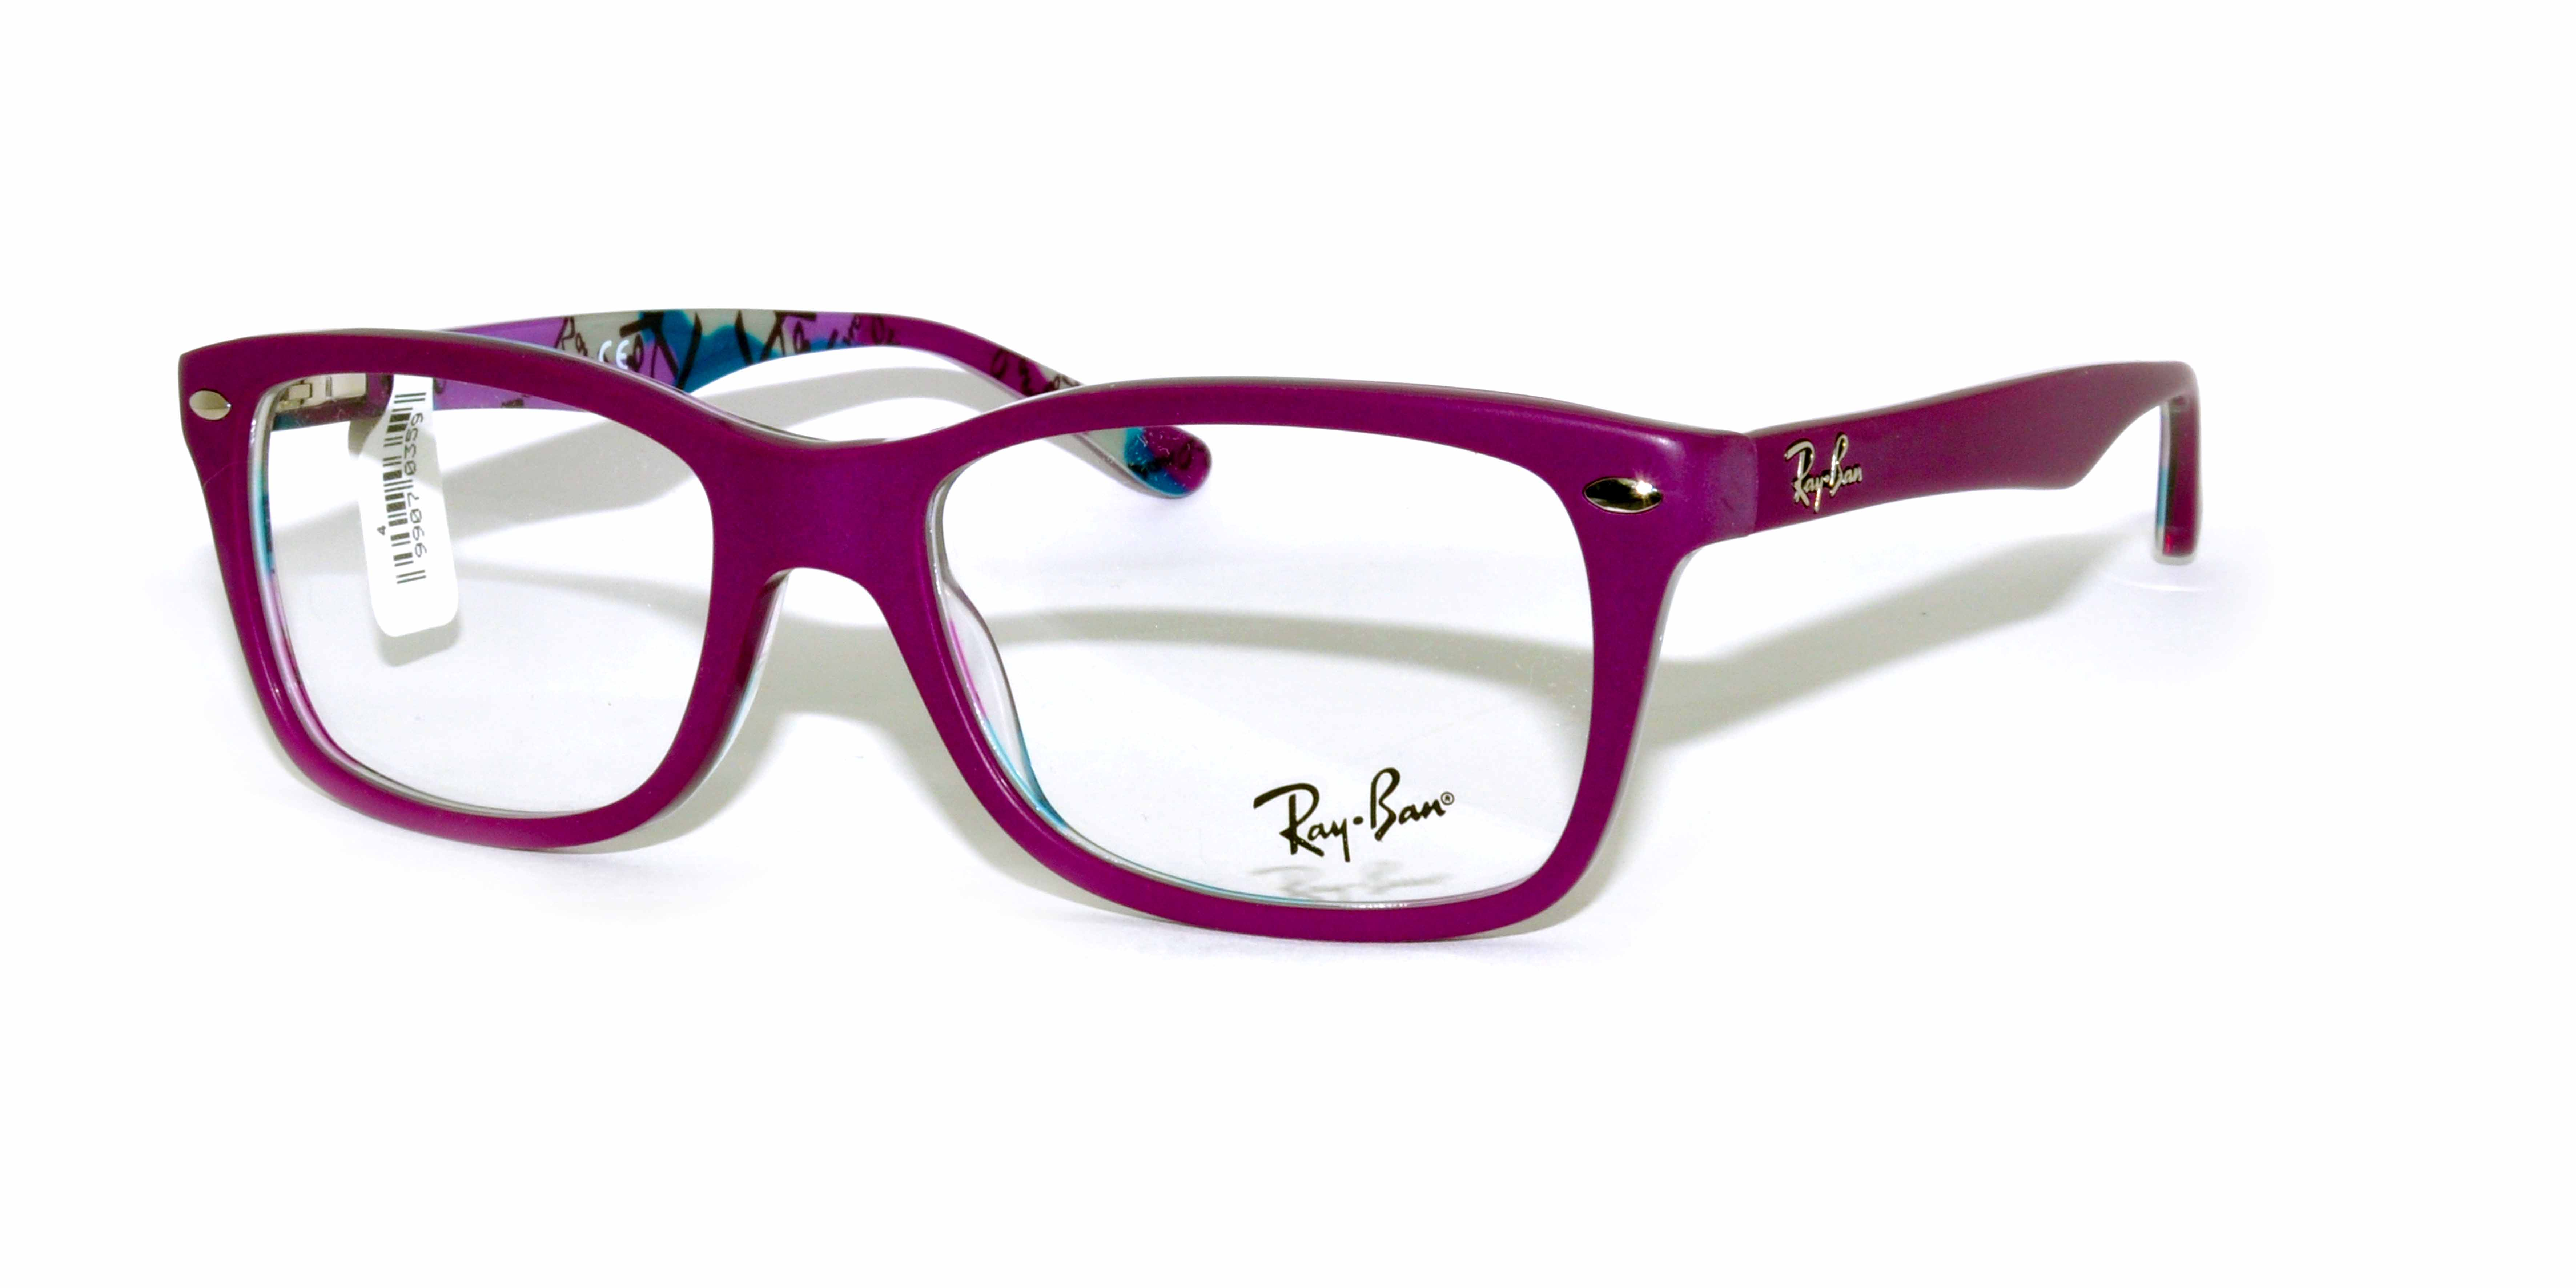 ray ban glasses frames retailers